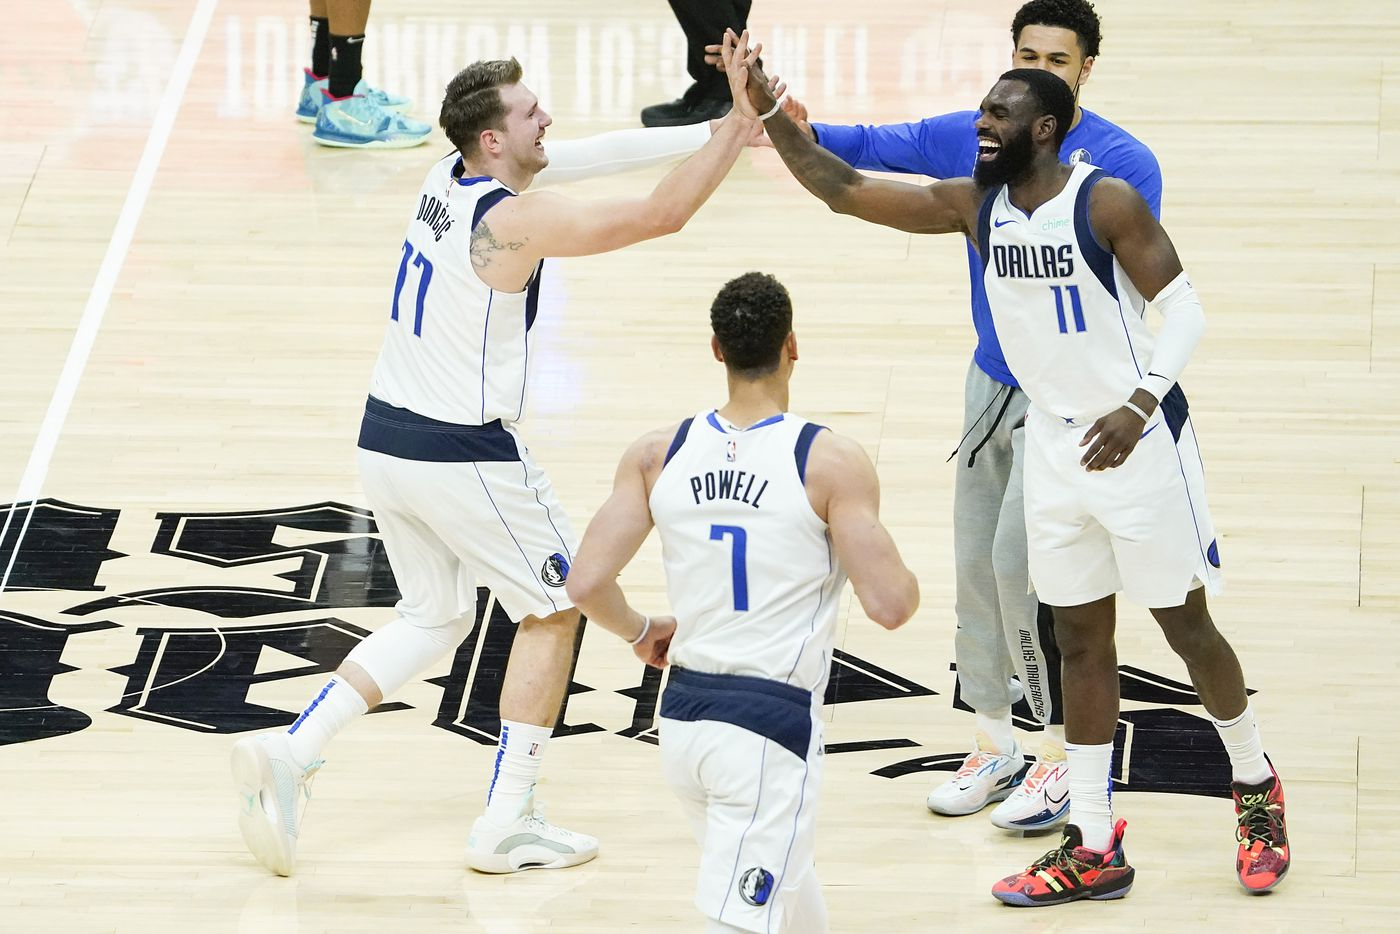 Dallas Mavericks guard Luka Doncic (77) celebrates with forward Tim Hardaway Jr. (11) after scoring during the third quarter of an NBA playoff basketball game against the LA Clippers at the Staples Center on Wednesday, June 2, 2021, in Los Angeles.  (Smiley N. Pool/The Dallas Morning News)